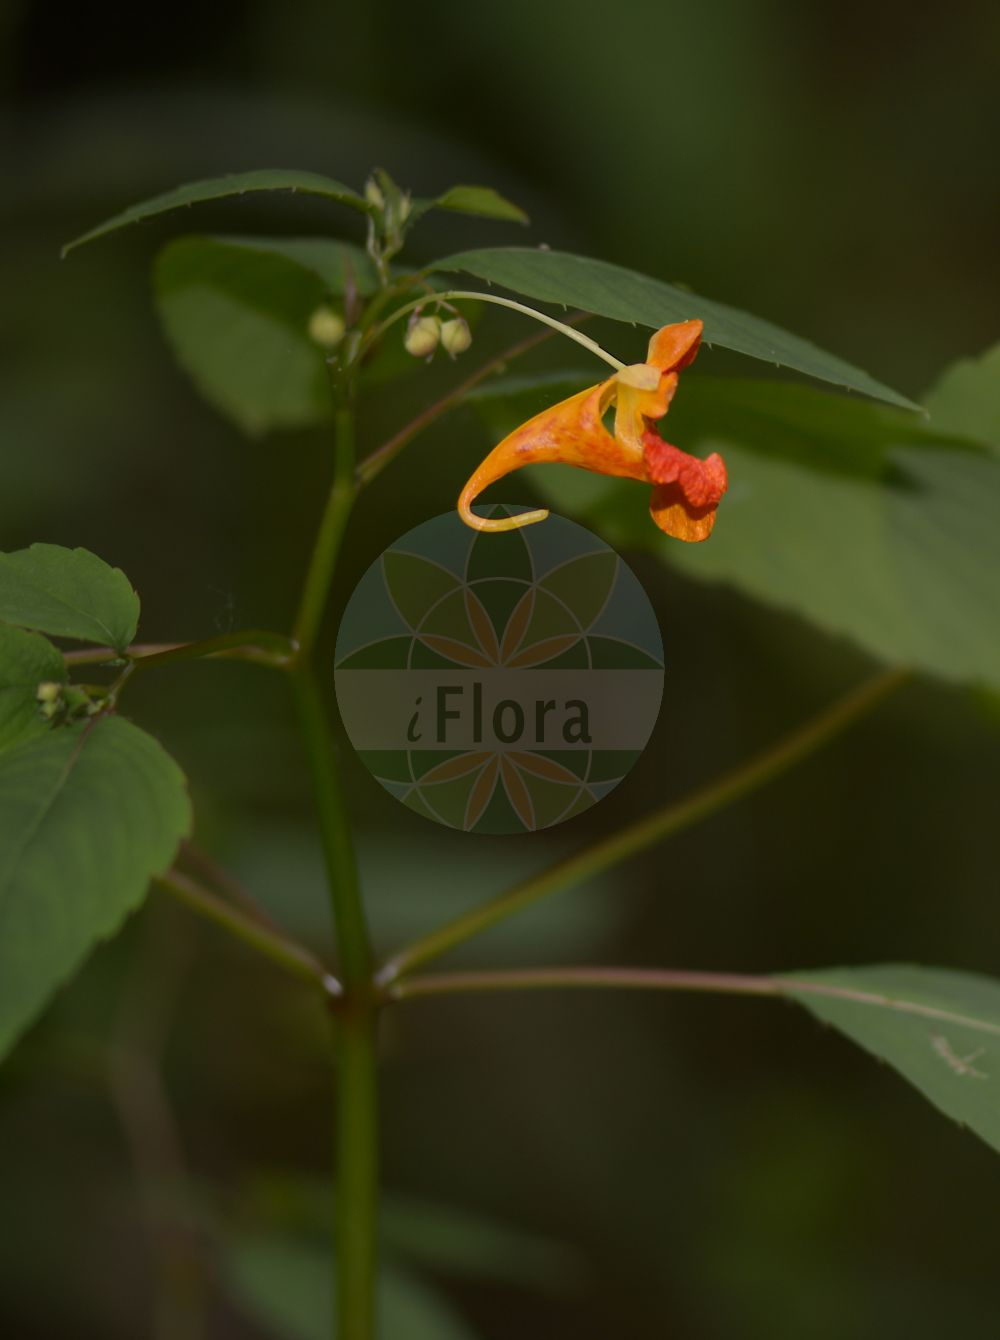 Foto von Impatiens capensis (Orangerotes Springkraut - Orange Balsam). Das Bild zeigt Blatt und Bluete. Das Foto wurde in Heuchelheim, Giessen, Hessen, Deutschland, Wetterau und Giessener Becken aufgenommen. ---- Photo of Impatiens capensis (Orangerotes Springkraut - Orange Balsam).The image is showing leaf and flower.The picture was taken in Heuchelheim, Giessen, Hesse, Germany, Wetterau and Giessener Becken.(Impatiens capensis,Orangerotes Springkraut,Orange Balsam,Impatiens biflora,Impatiens fulva,Touch-me-Not,Jewelweed,Common Jewelweed,Orange Jewelweed,Spotted Snapweed,Impatiens,Springkraut,Touch-me-Not,Balsaminaceae,Springkrautgewaechse,Balsam family,Blatt,Bluete,leaf,flower)